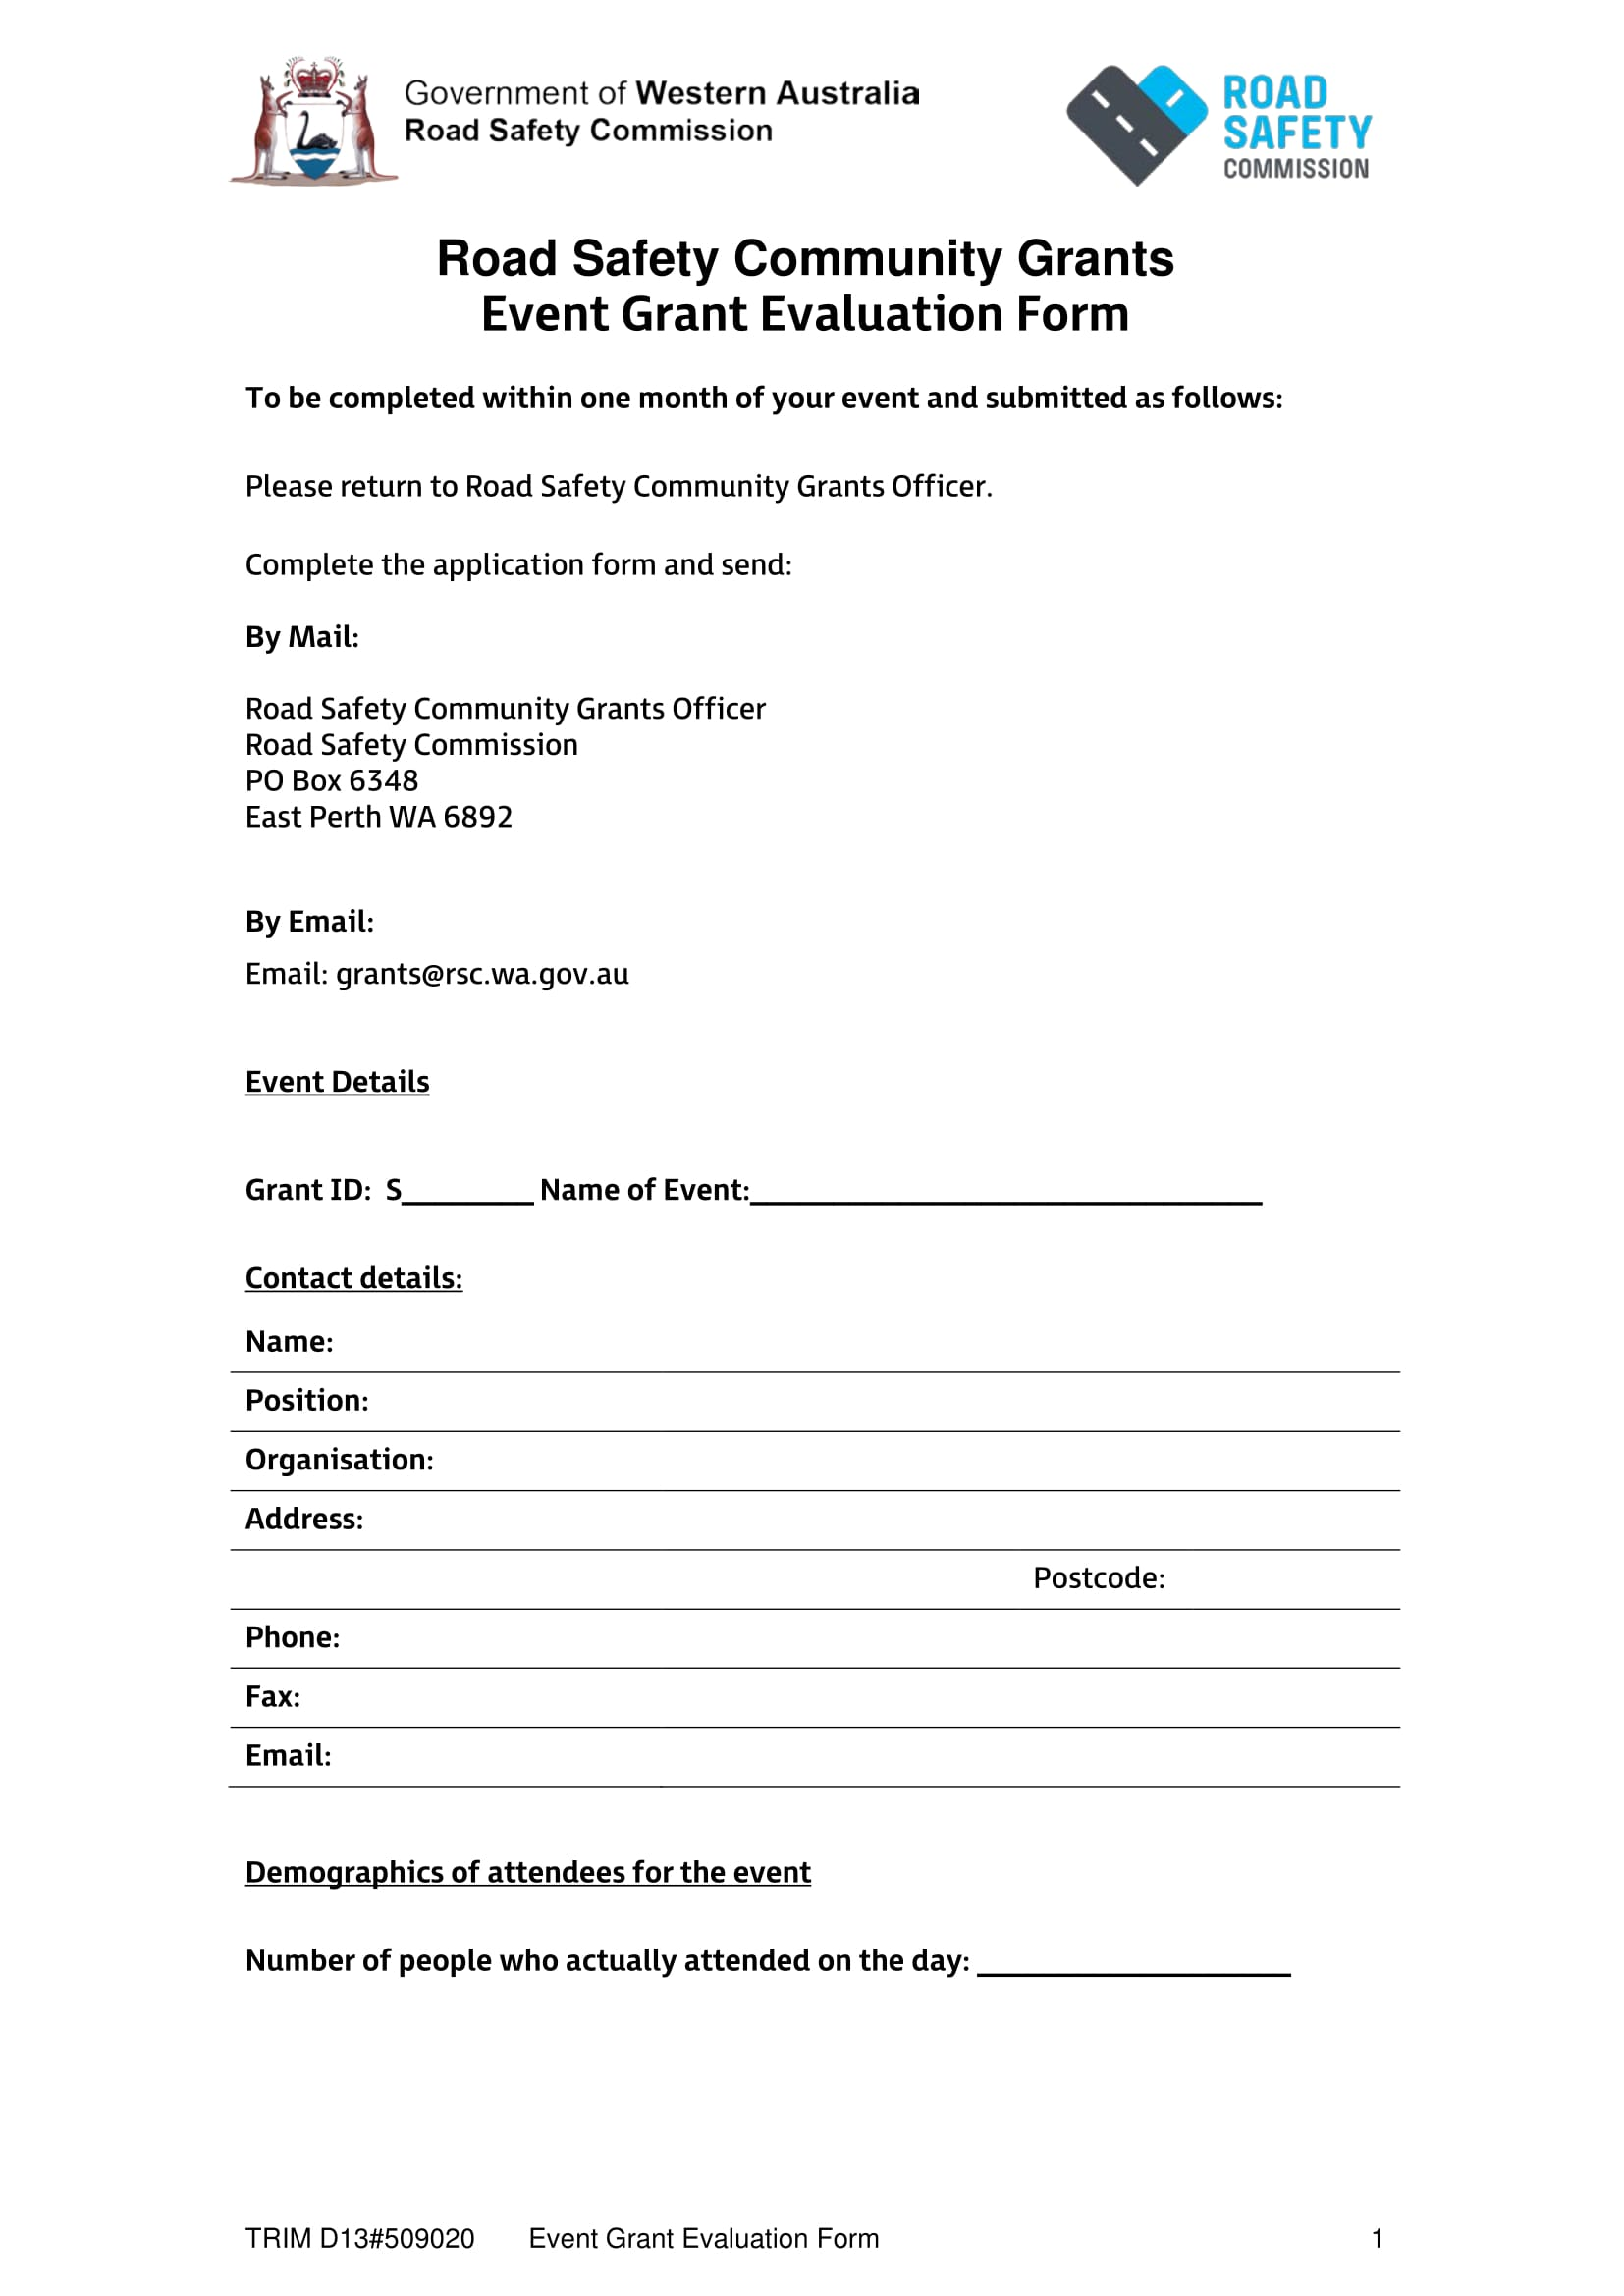 event grant evaluation form 1